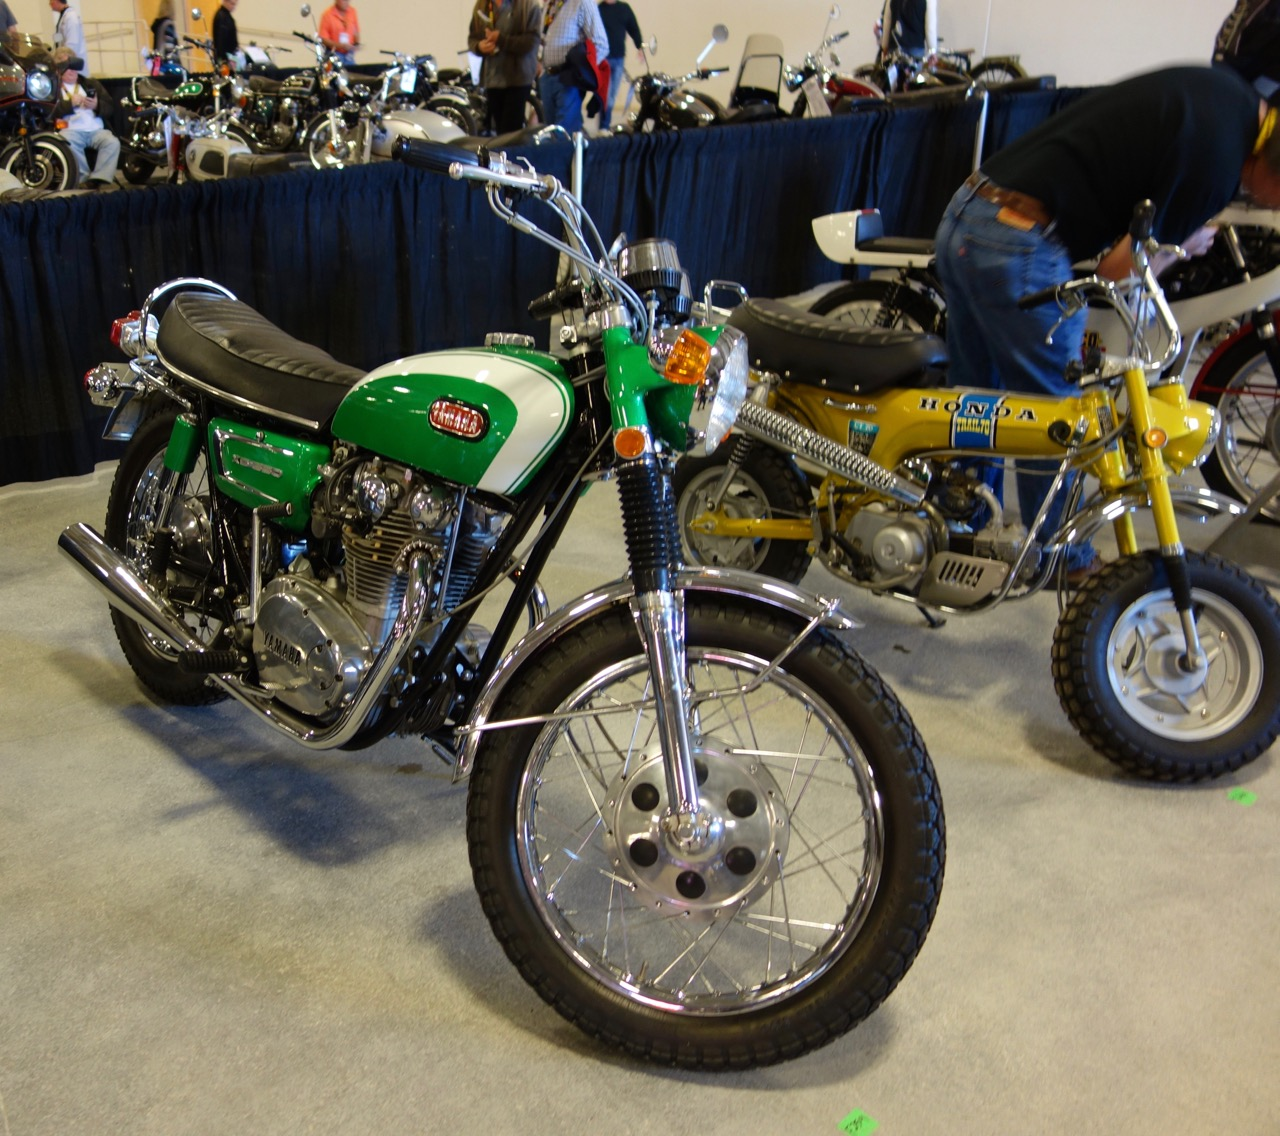 This and other Yamaha XS650's brought more money than expected